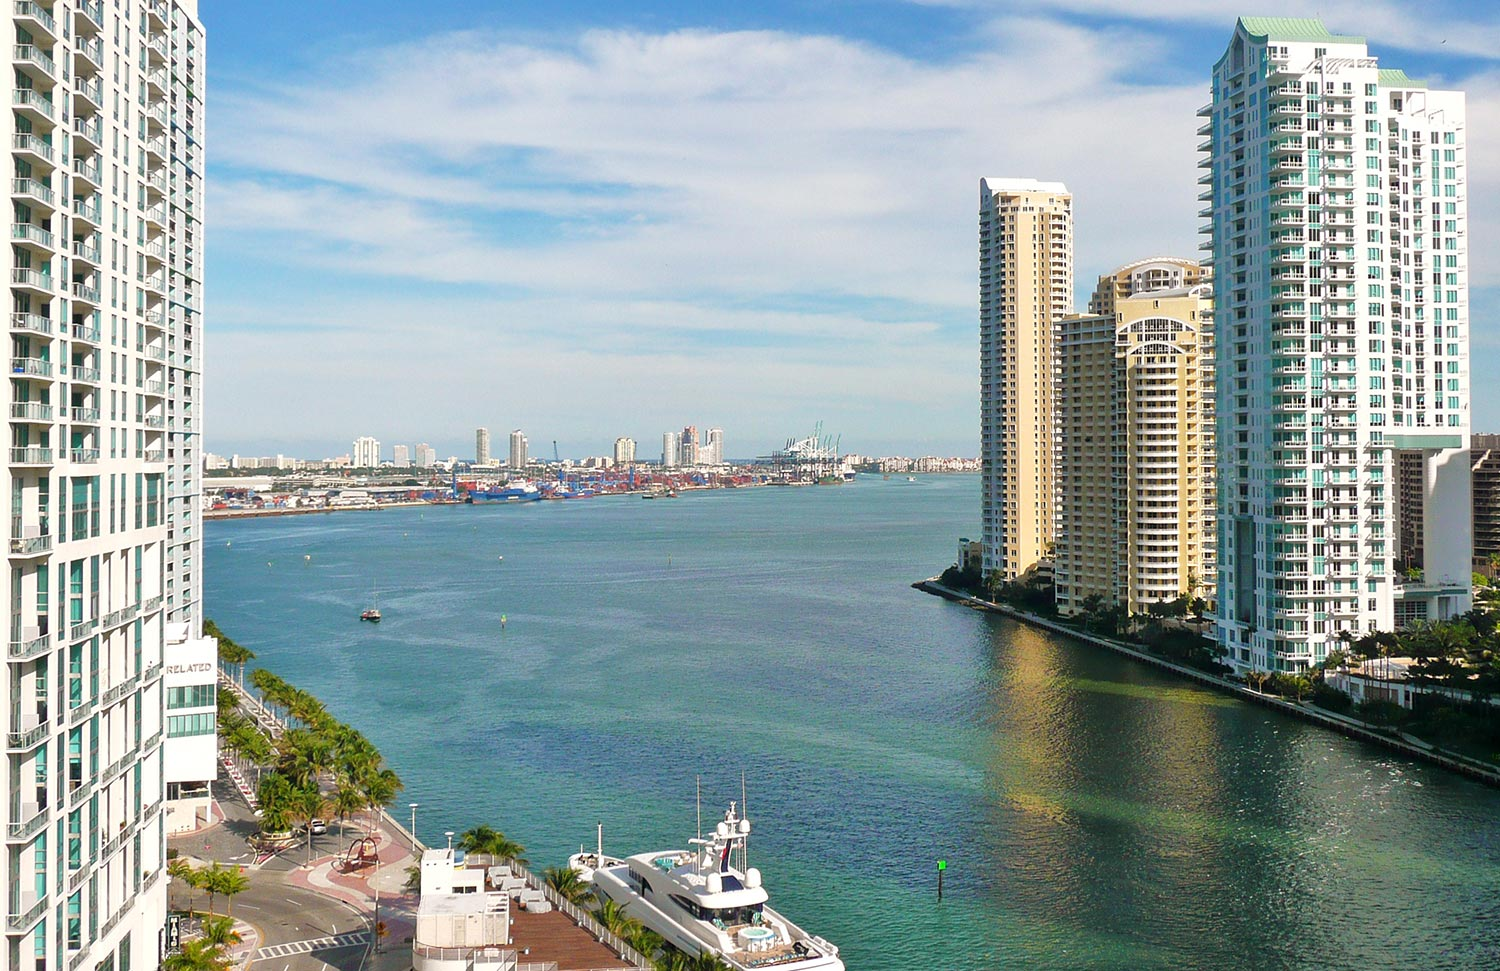 Mouth_of_Miami_River_20100211